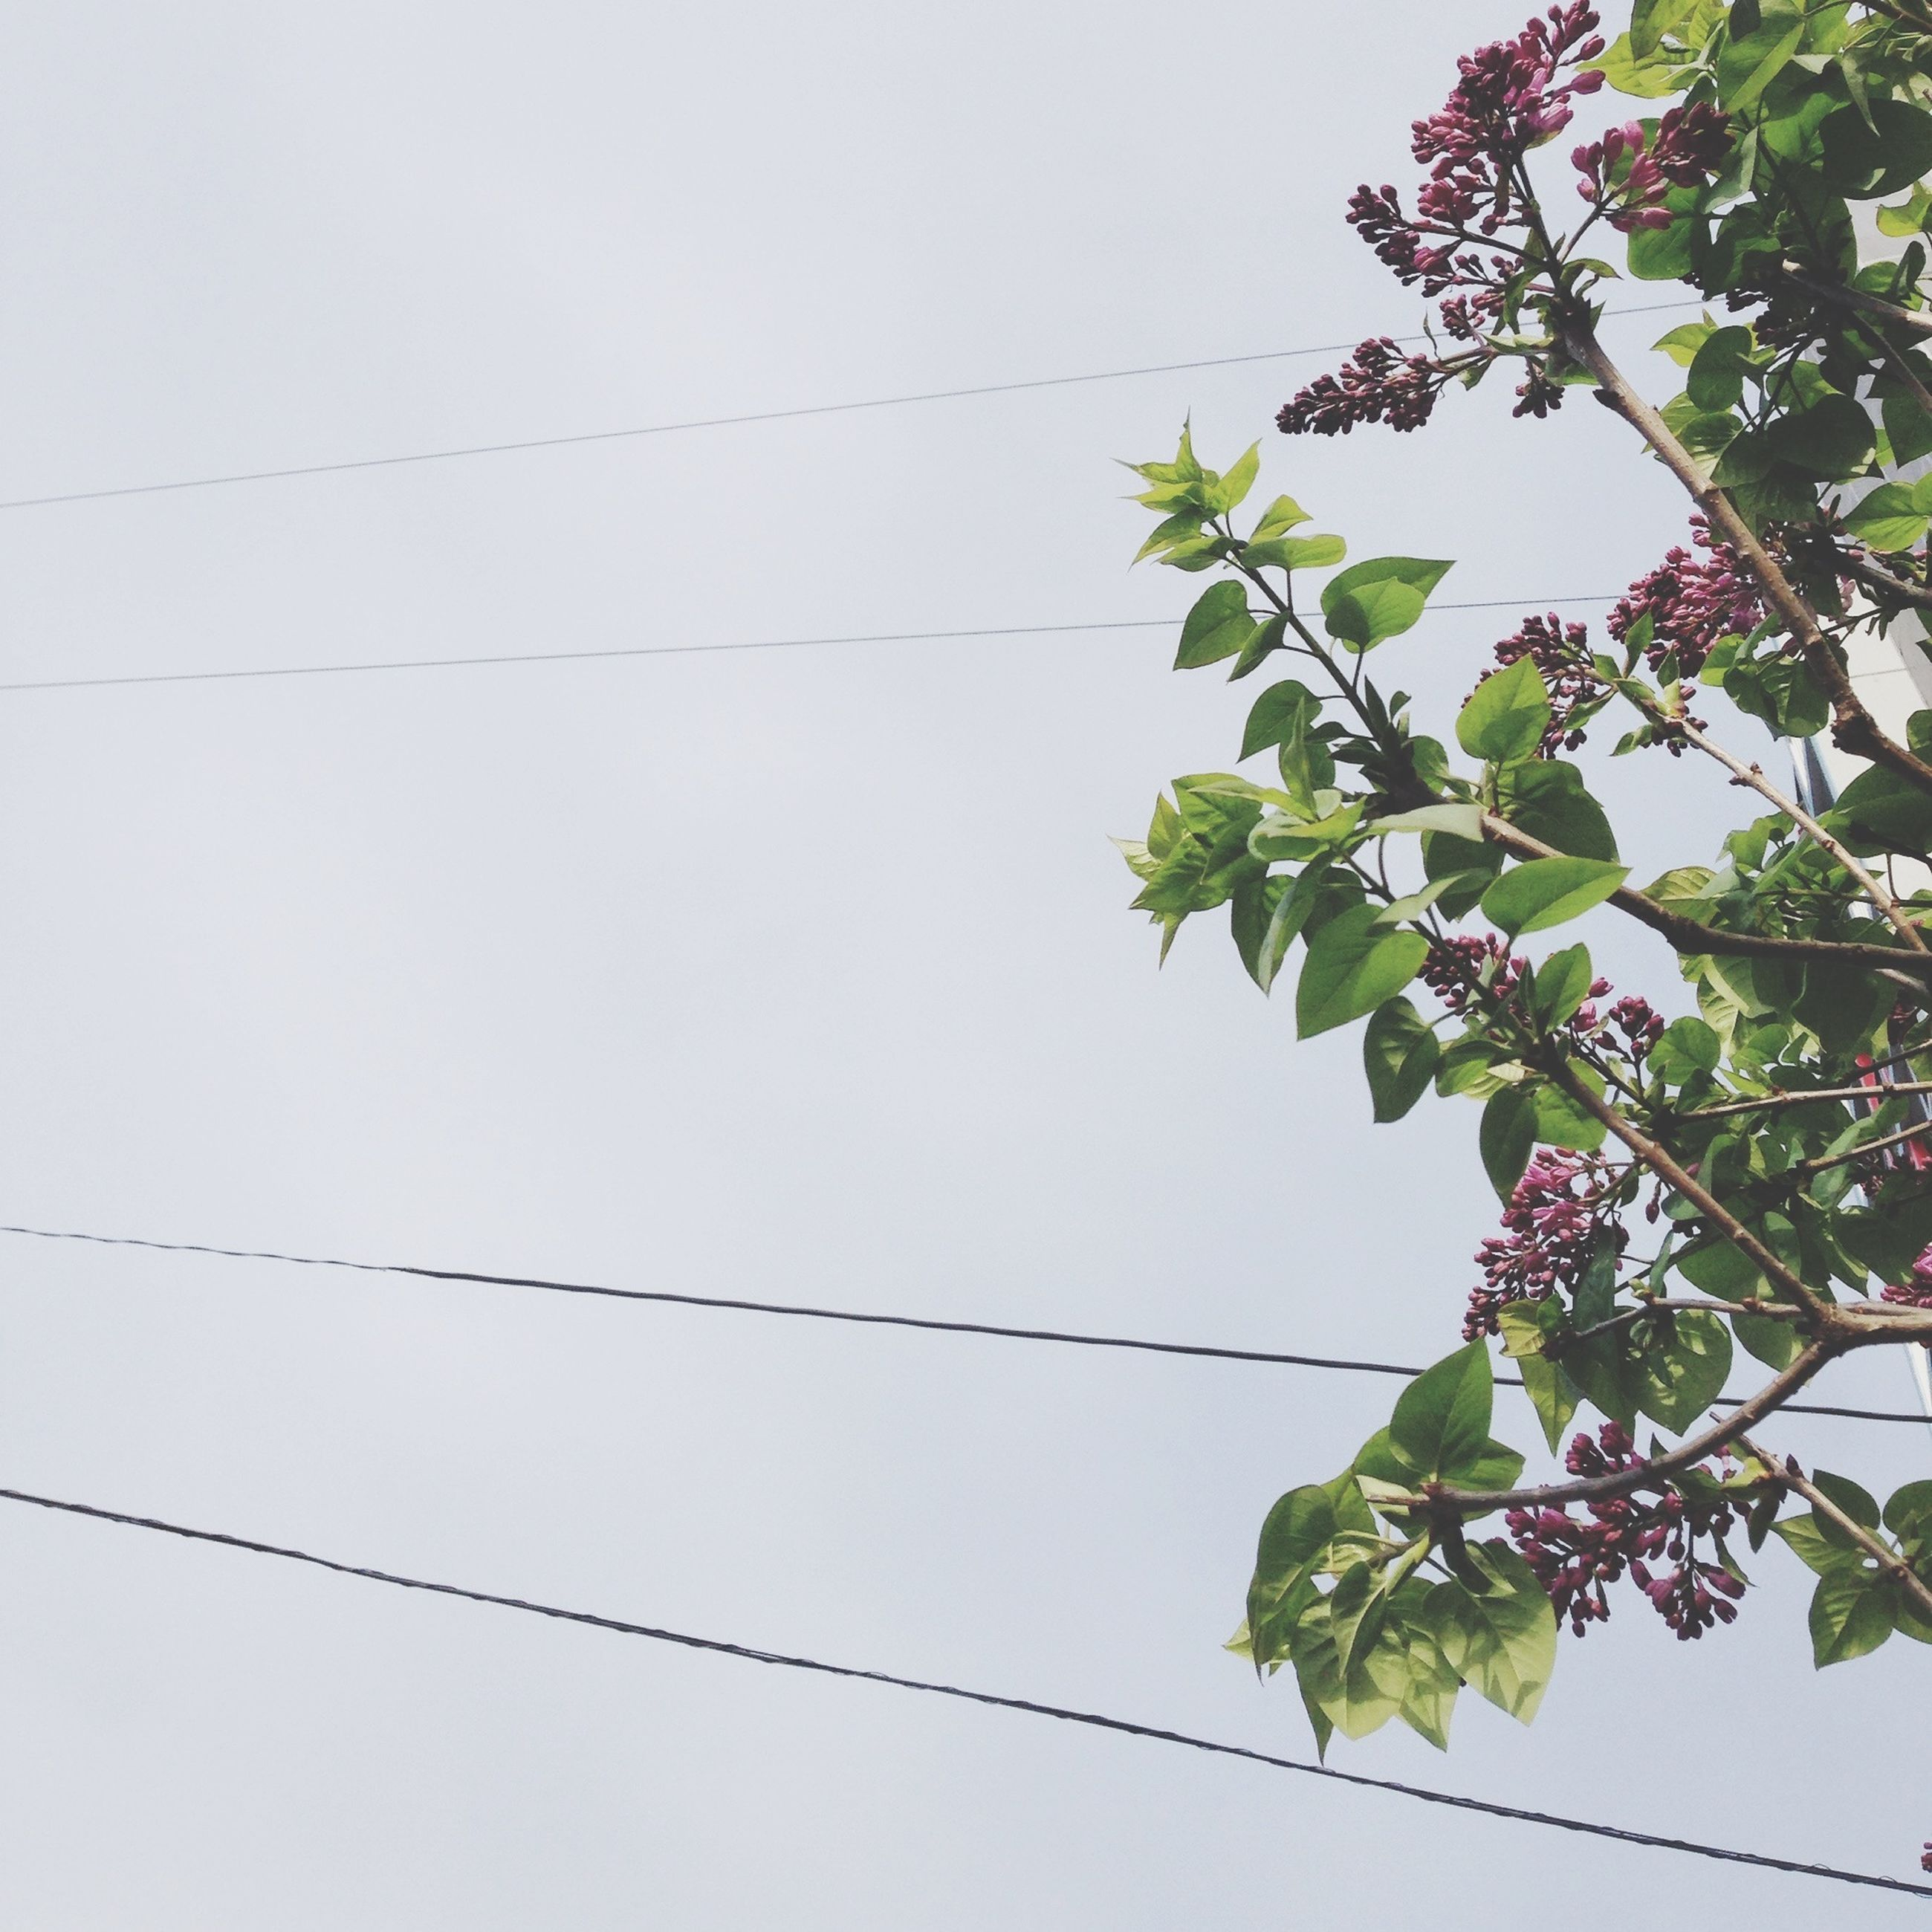 low angle view, growth, leaf, power line, plant, clear sky, nature, cable, branch, green color, tree, copy space, day, beauty in nature, no people, stem, outdoors, power supply, flower, twig